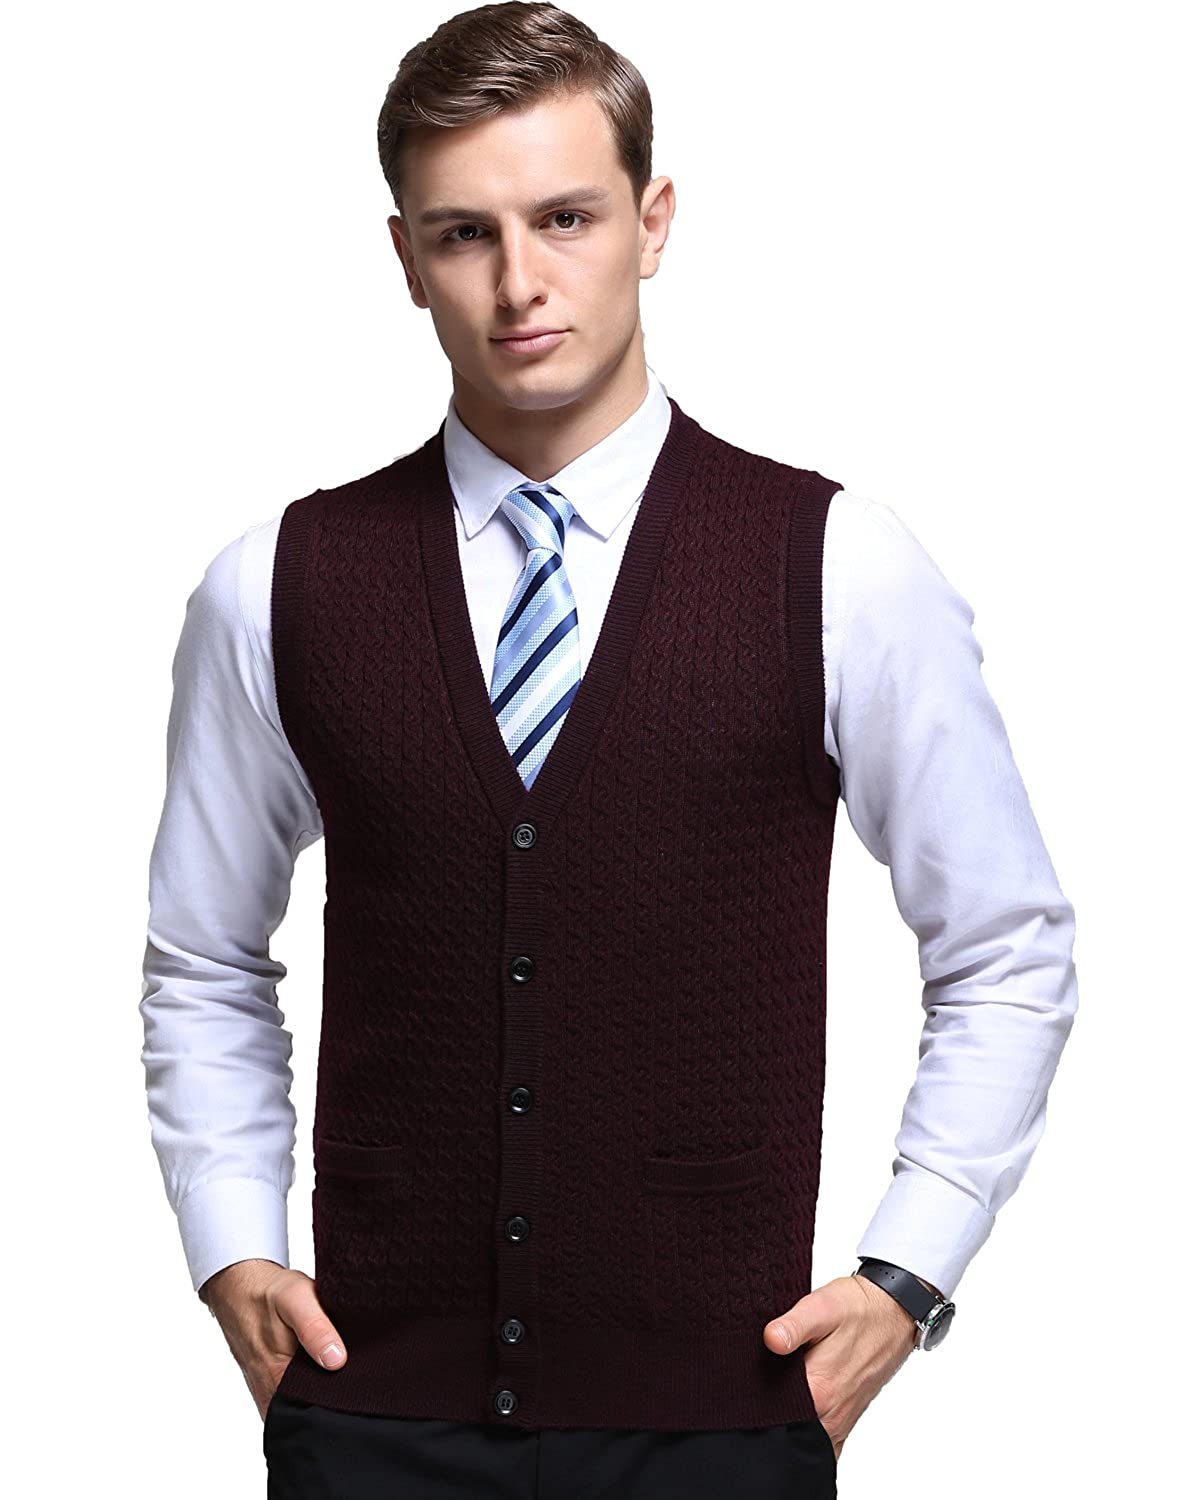 Kinlonsair Mens Slim Fit Ribbed Knit Cardigan Sweater Vest with Pockets